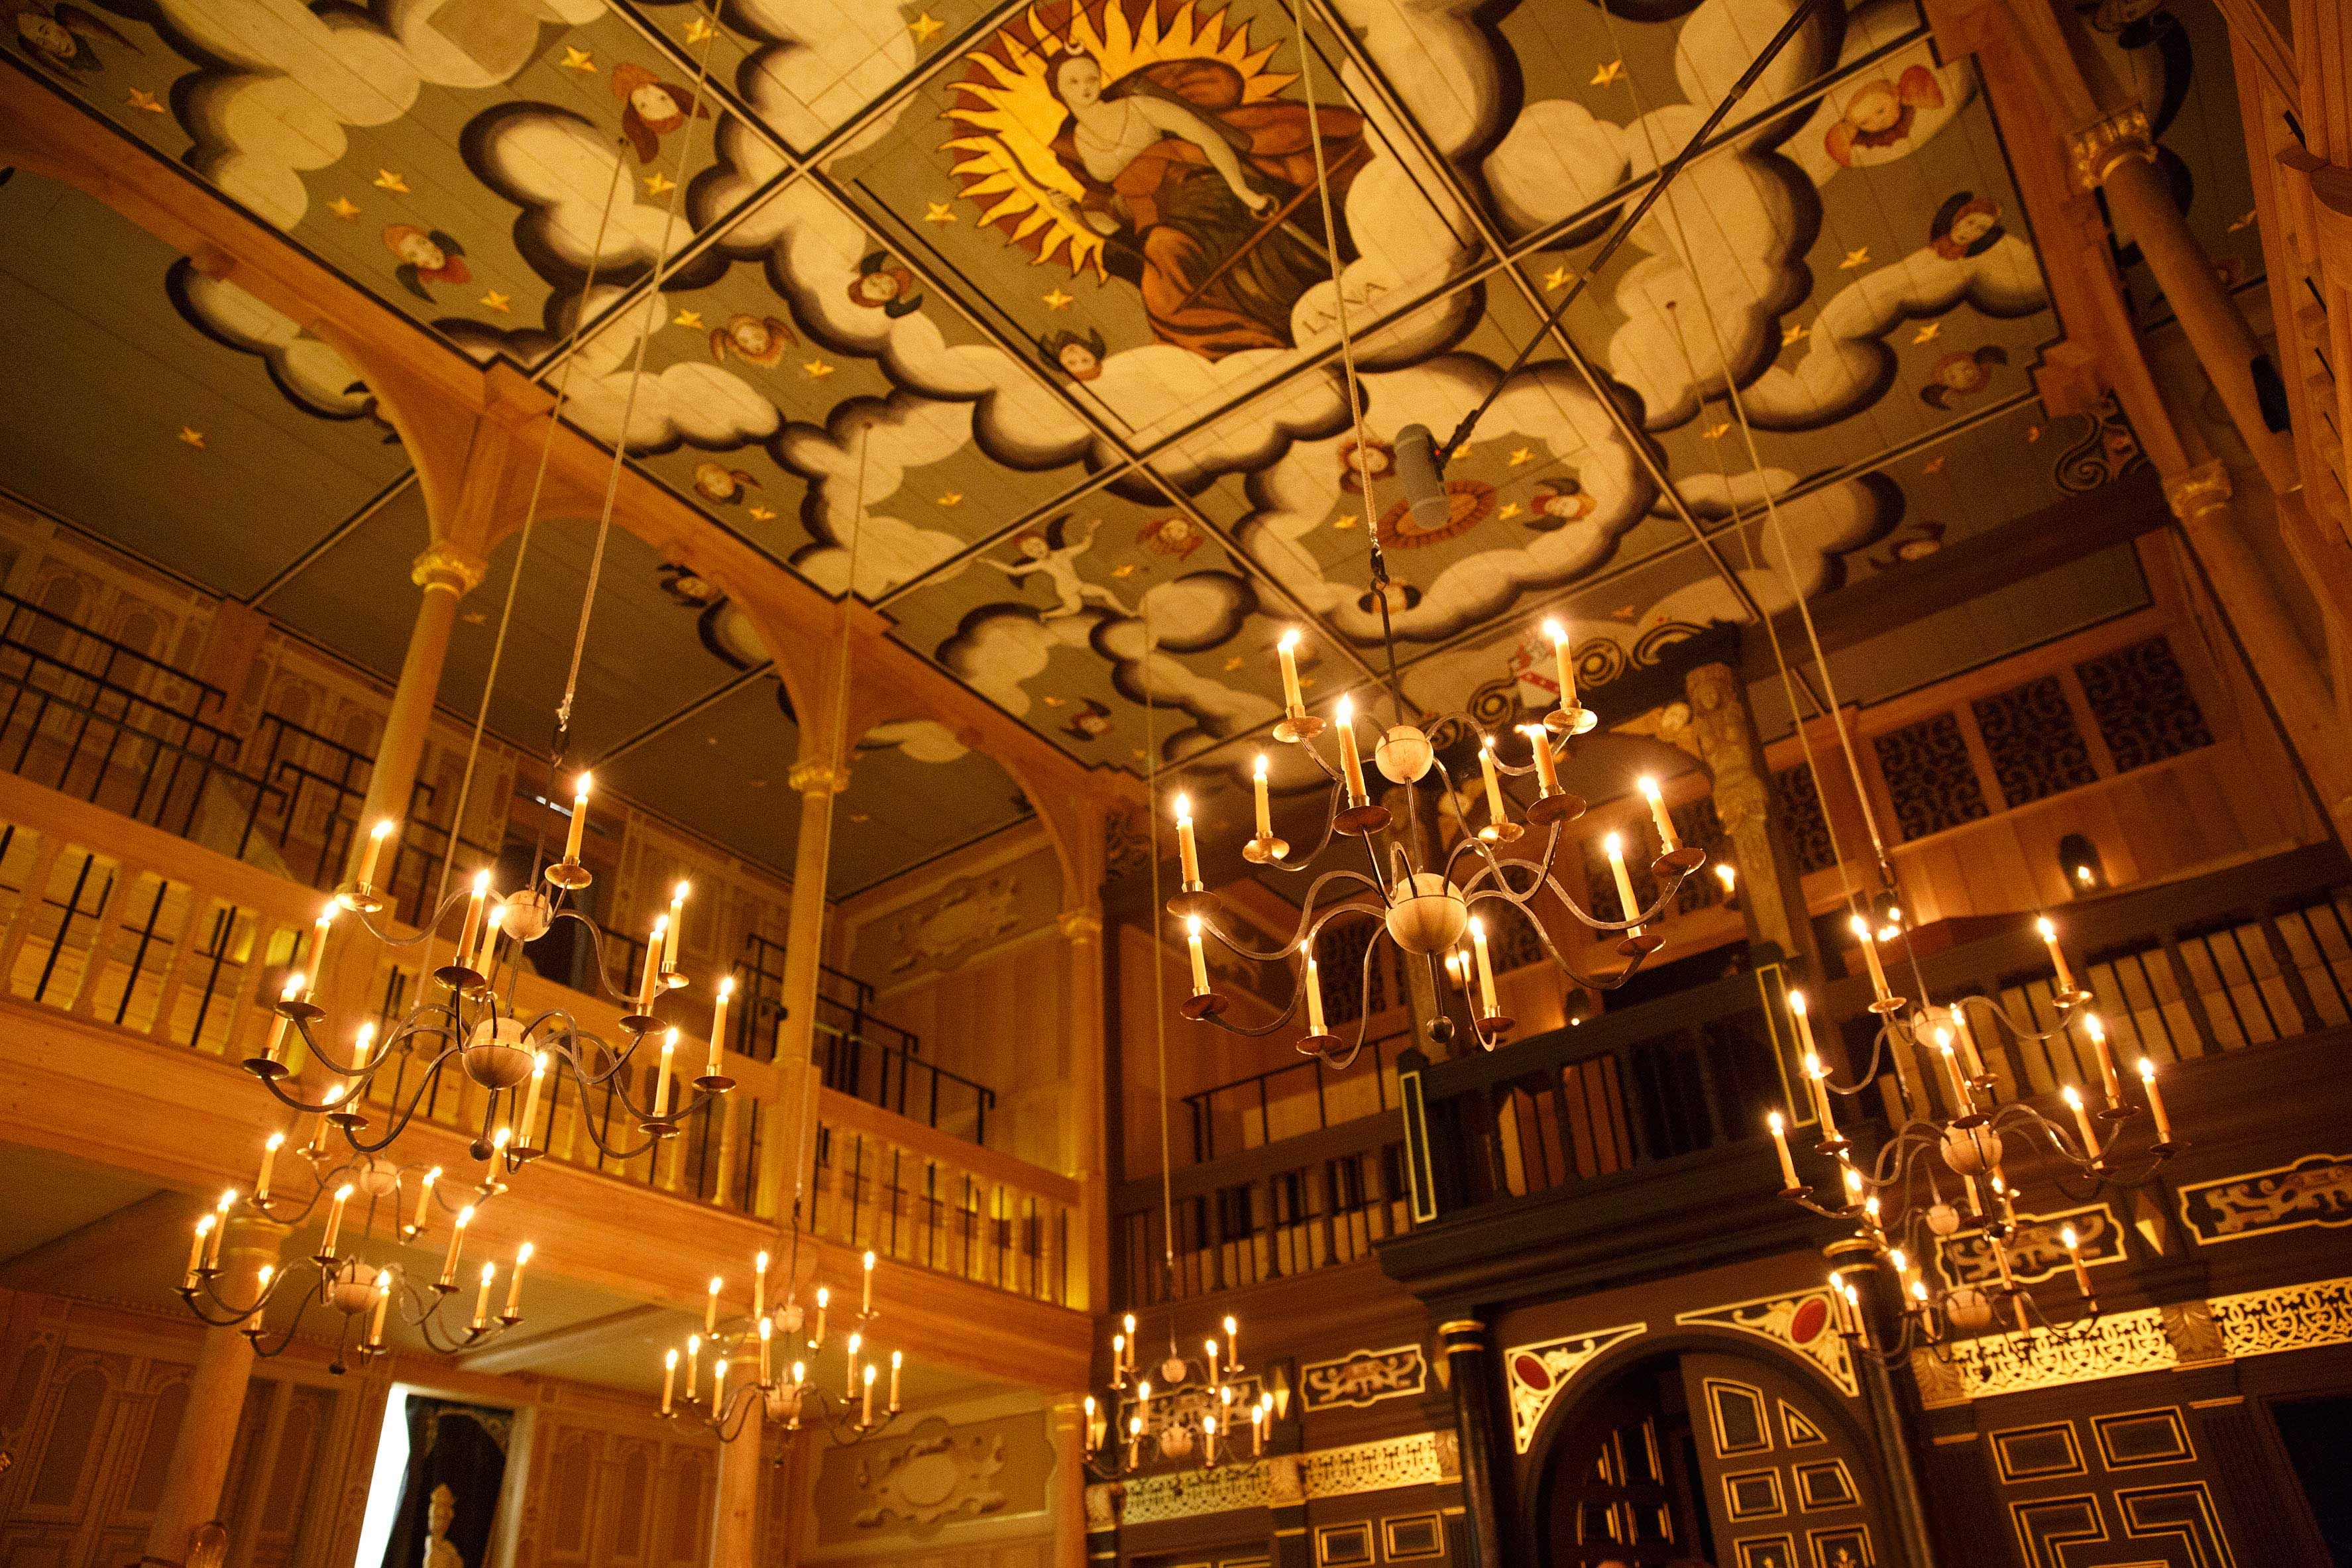 Photograph of the interior of the Sam Wanamaker Playhouse, London